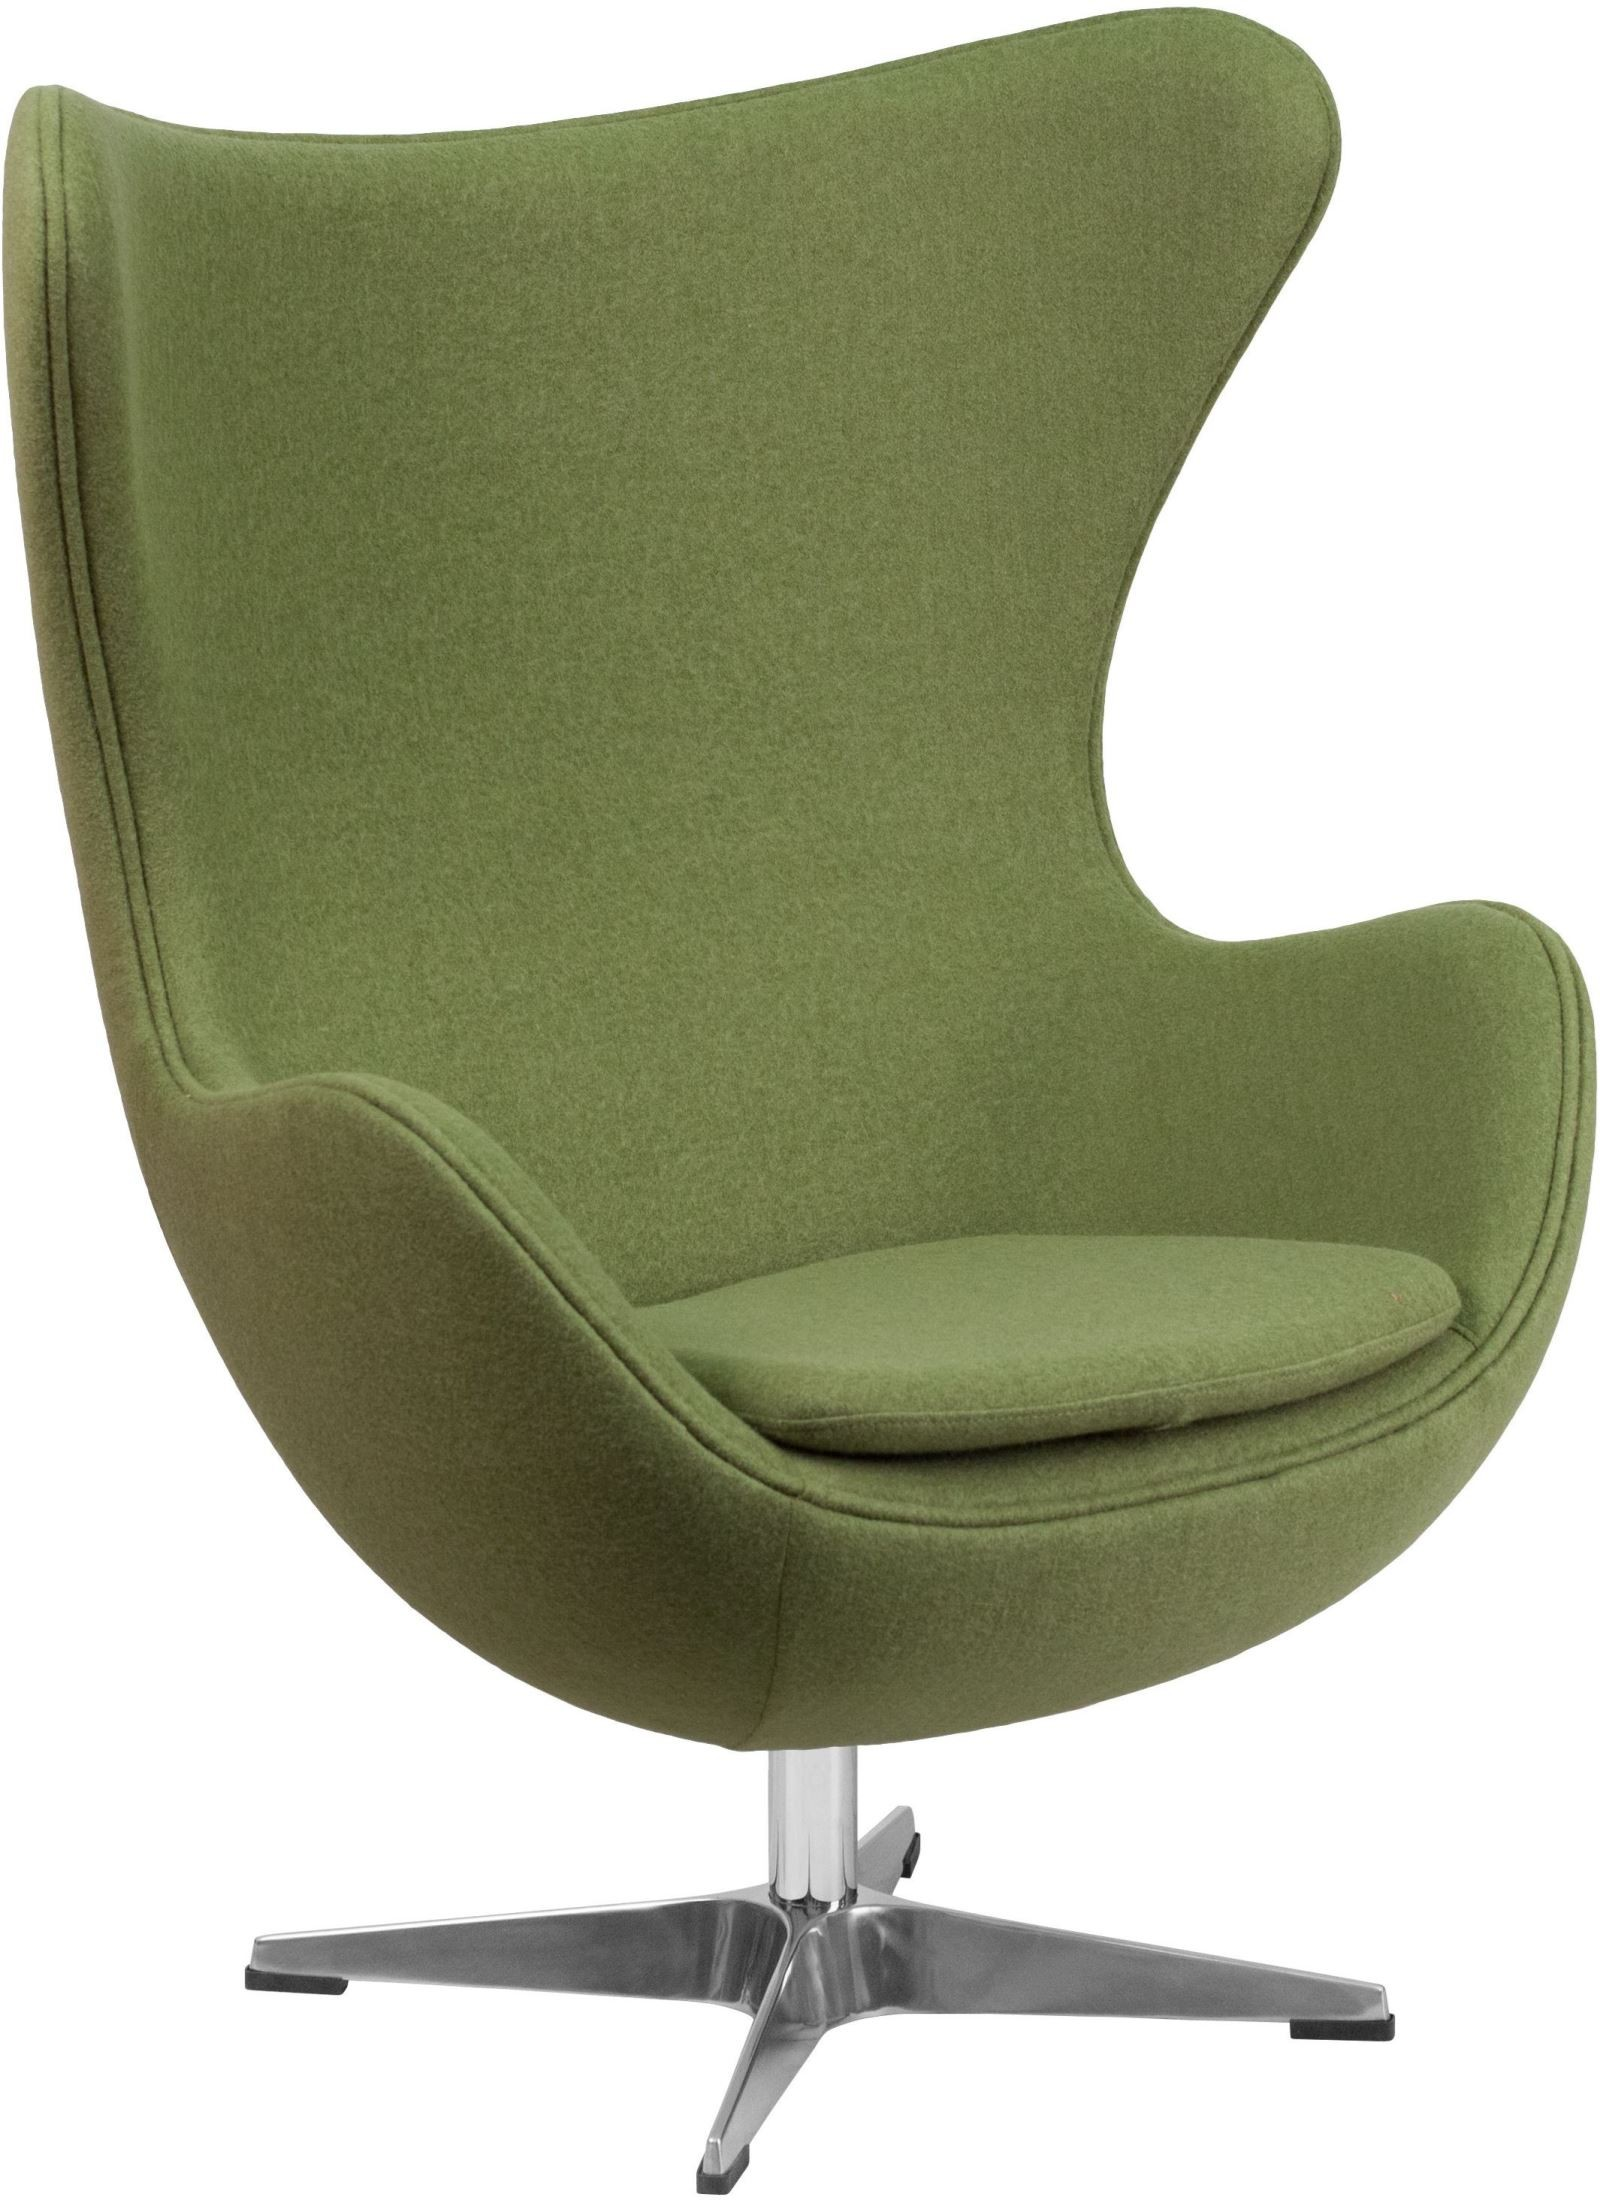 grass green wool fabric egg chair with tilt lock mechanism from renegade coleman furniture. Black Bedroom Furniture Sets. Home Design Ideas